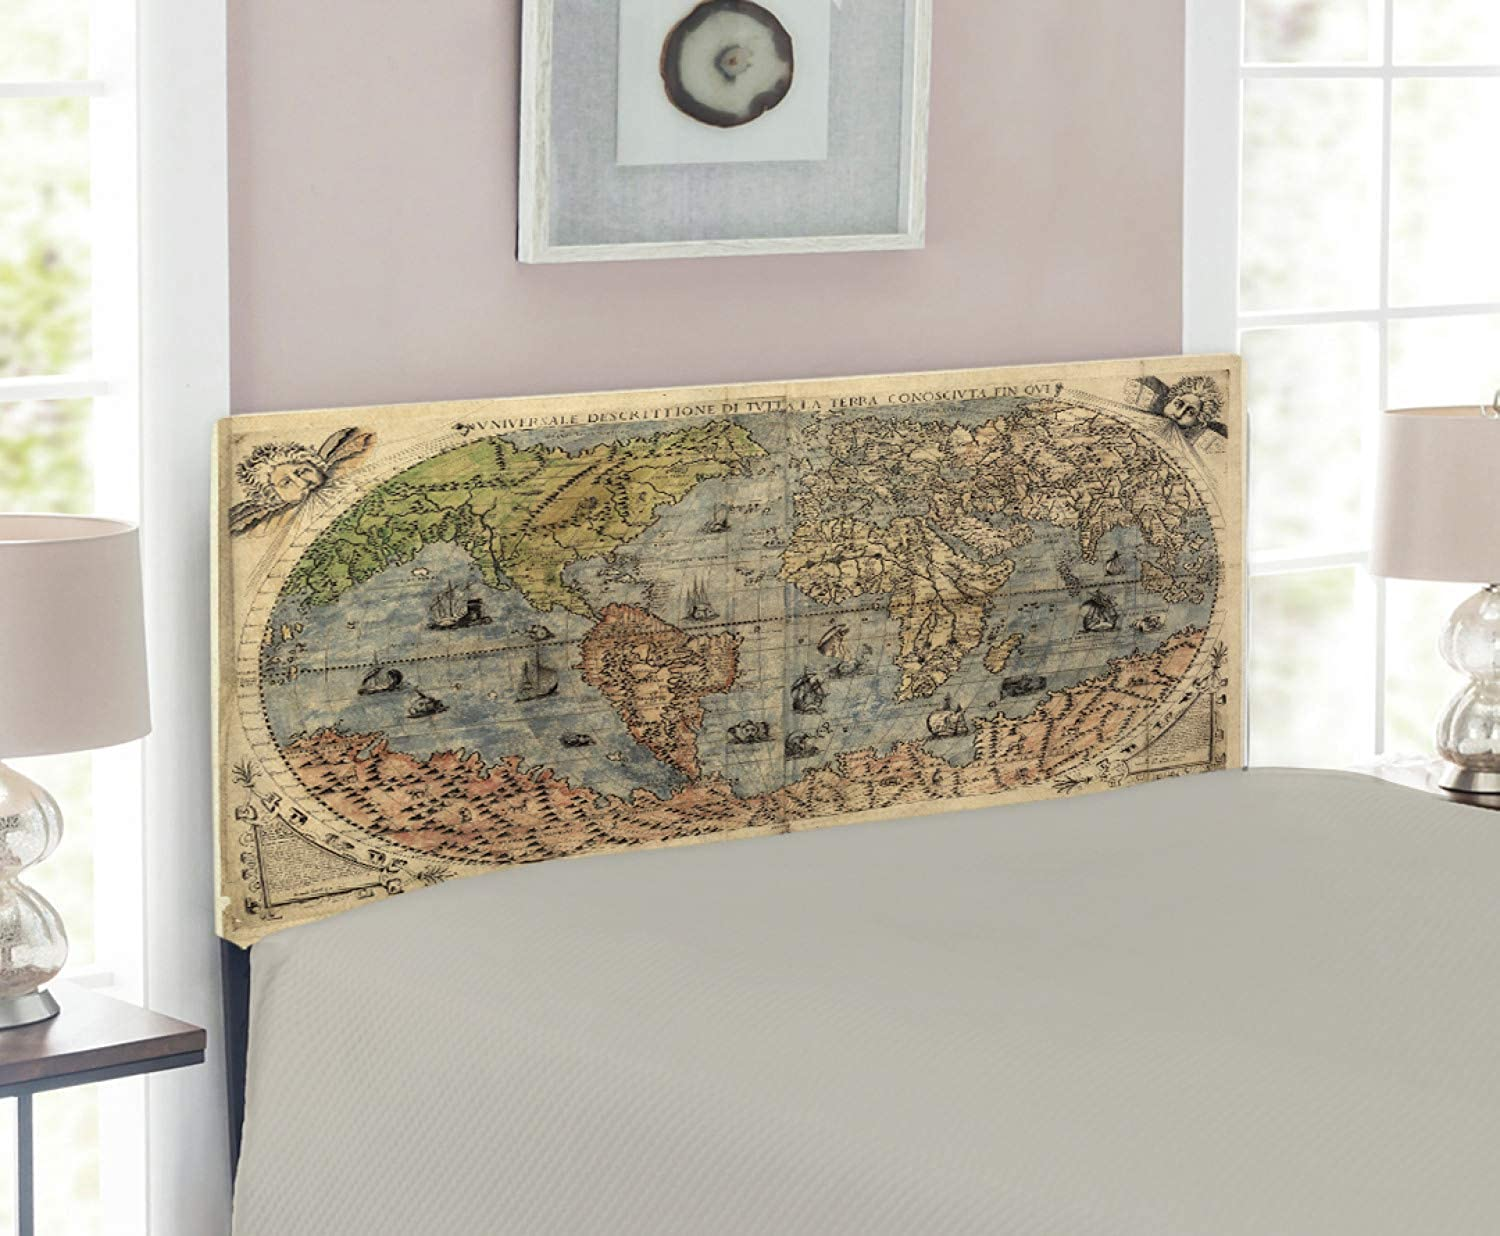 Lunarable Antique Headboard for Twin Size Bed, Ancient Map of World Global History Stained Paper Oceans Lands Vintage Atlas, Upholstered Decorative Metal Headboard with Memory Foam, Cream Green pink